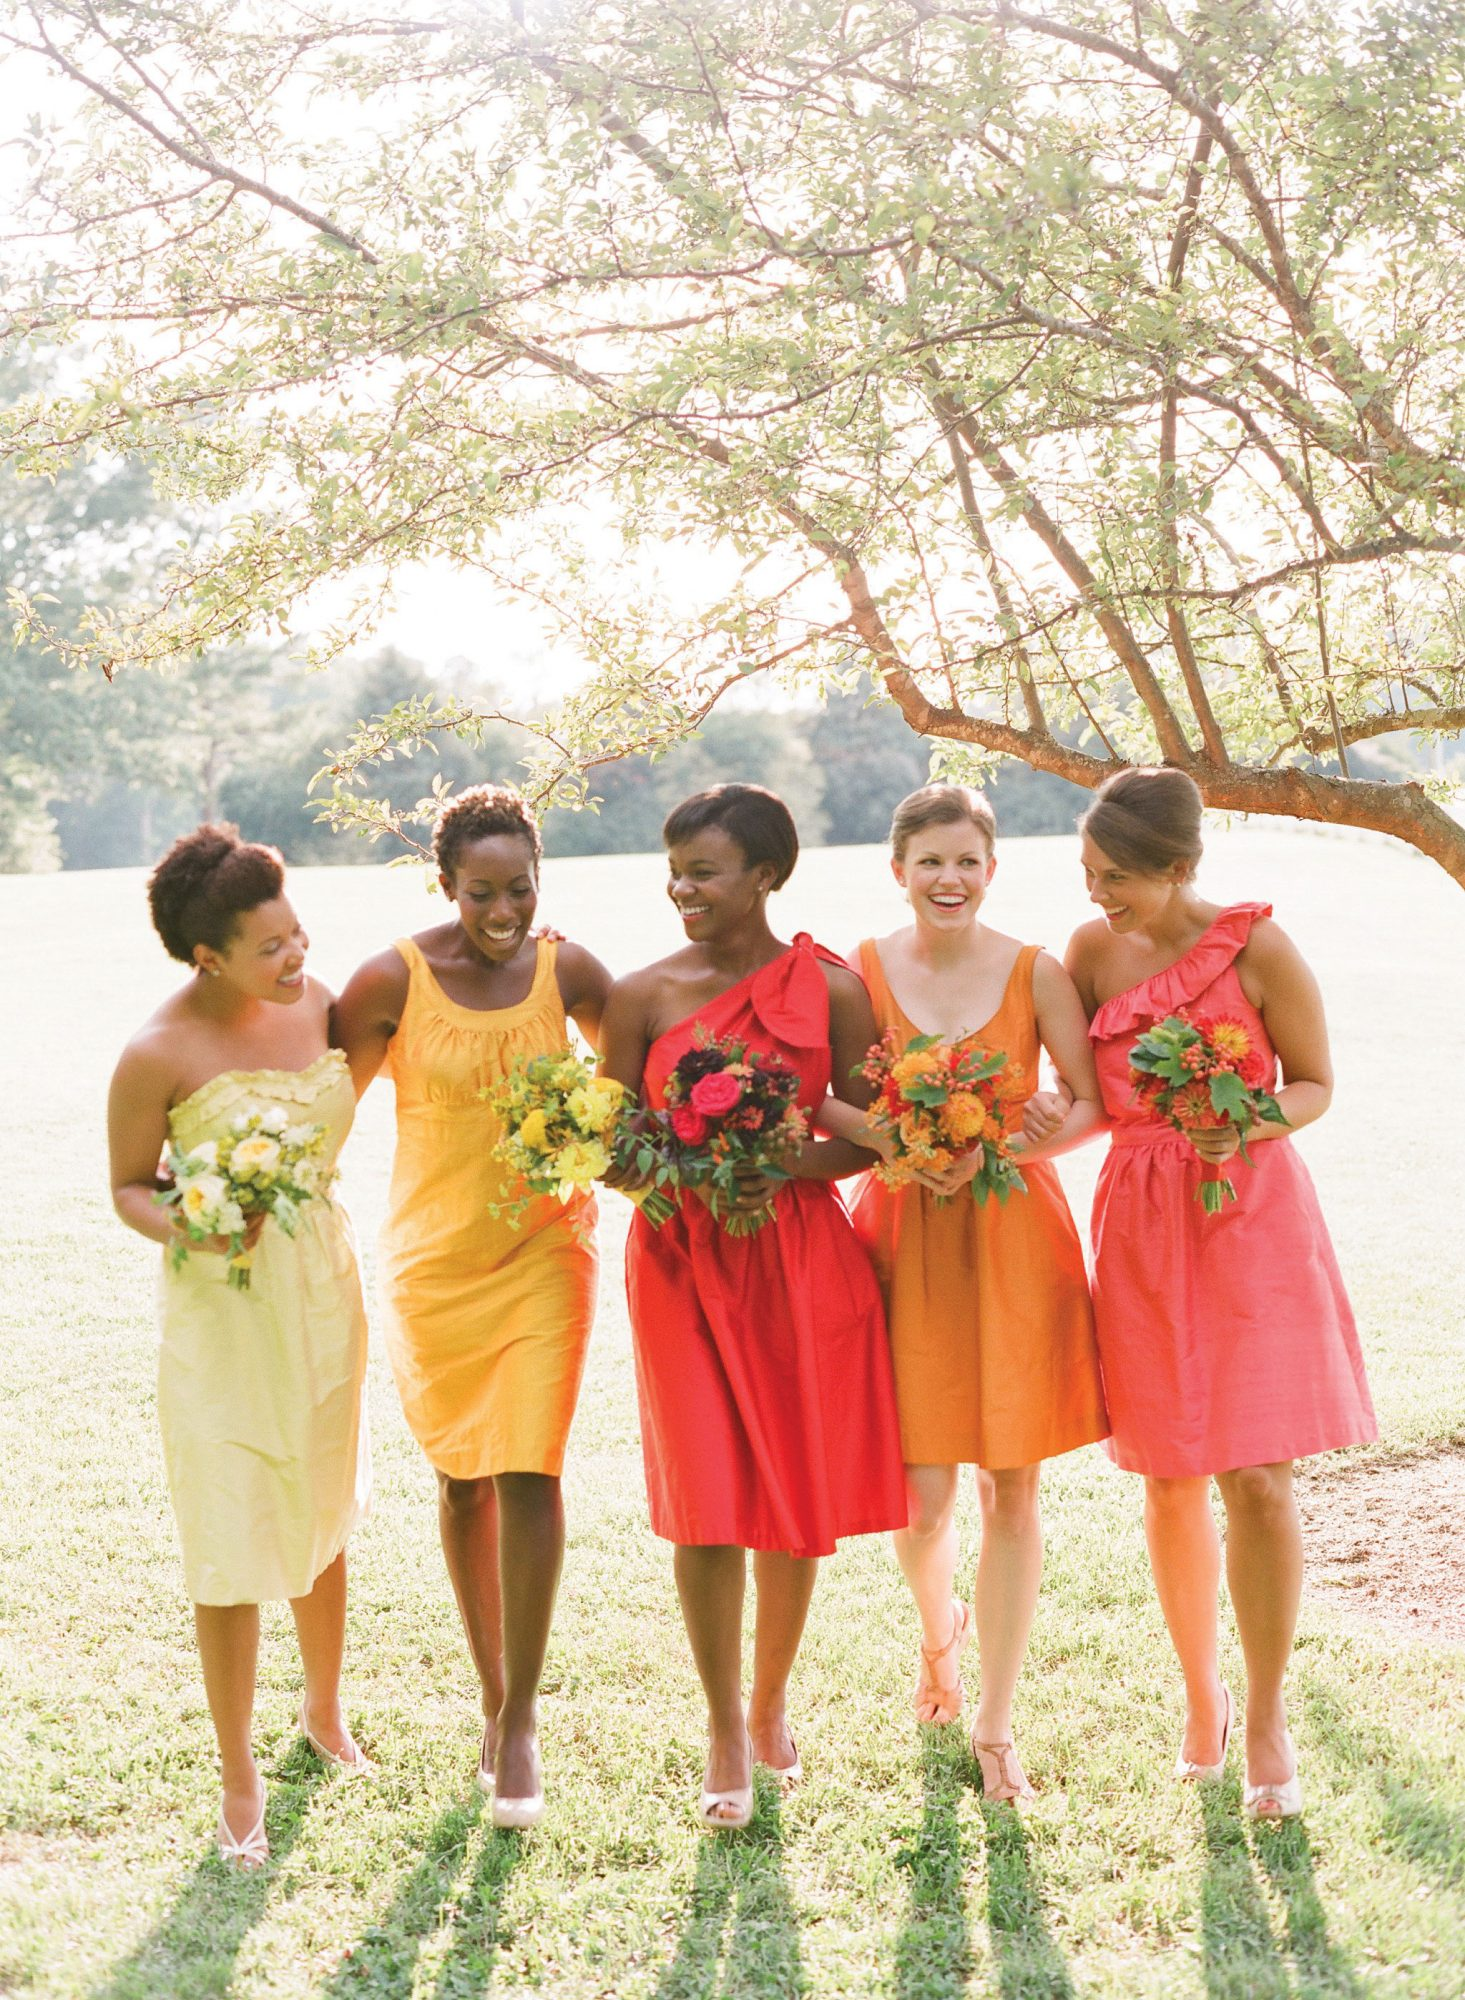 Bridesmaids' Dresses in Various Shades and Styles